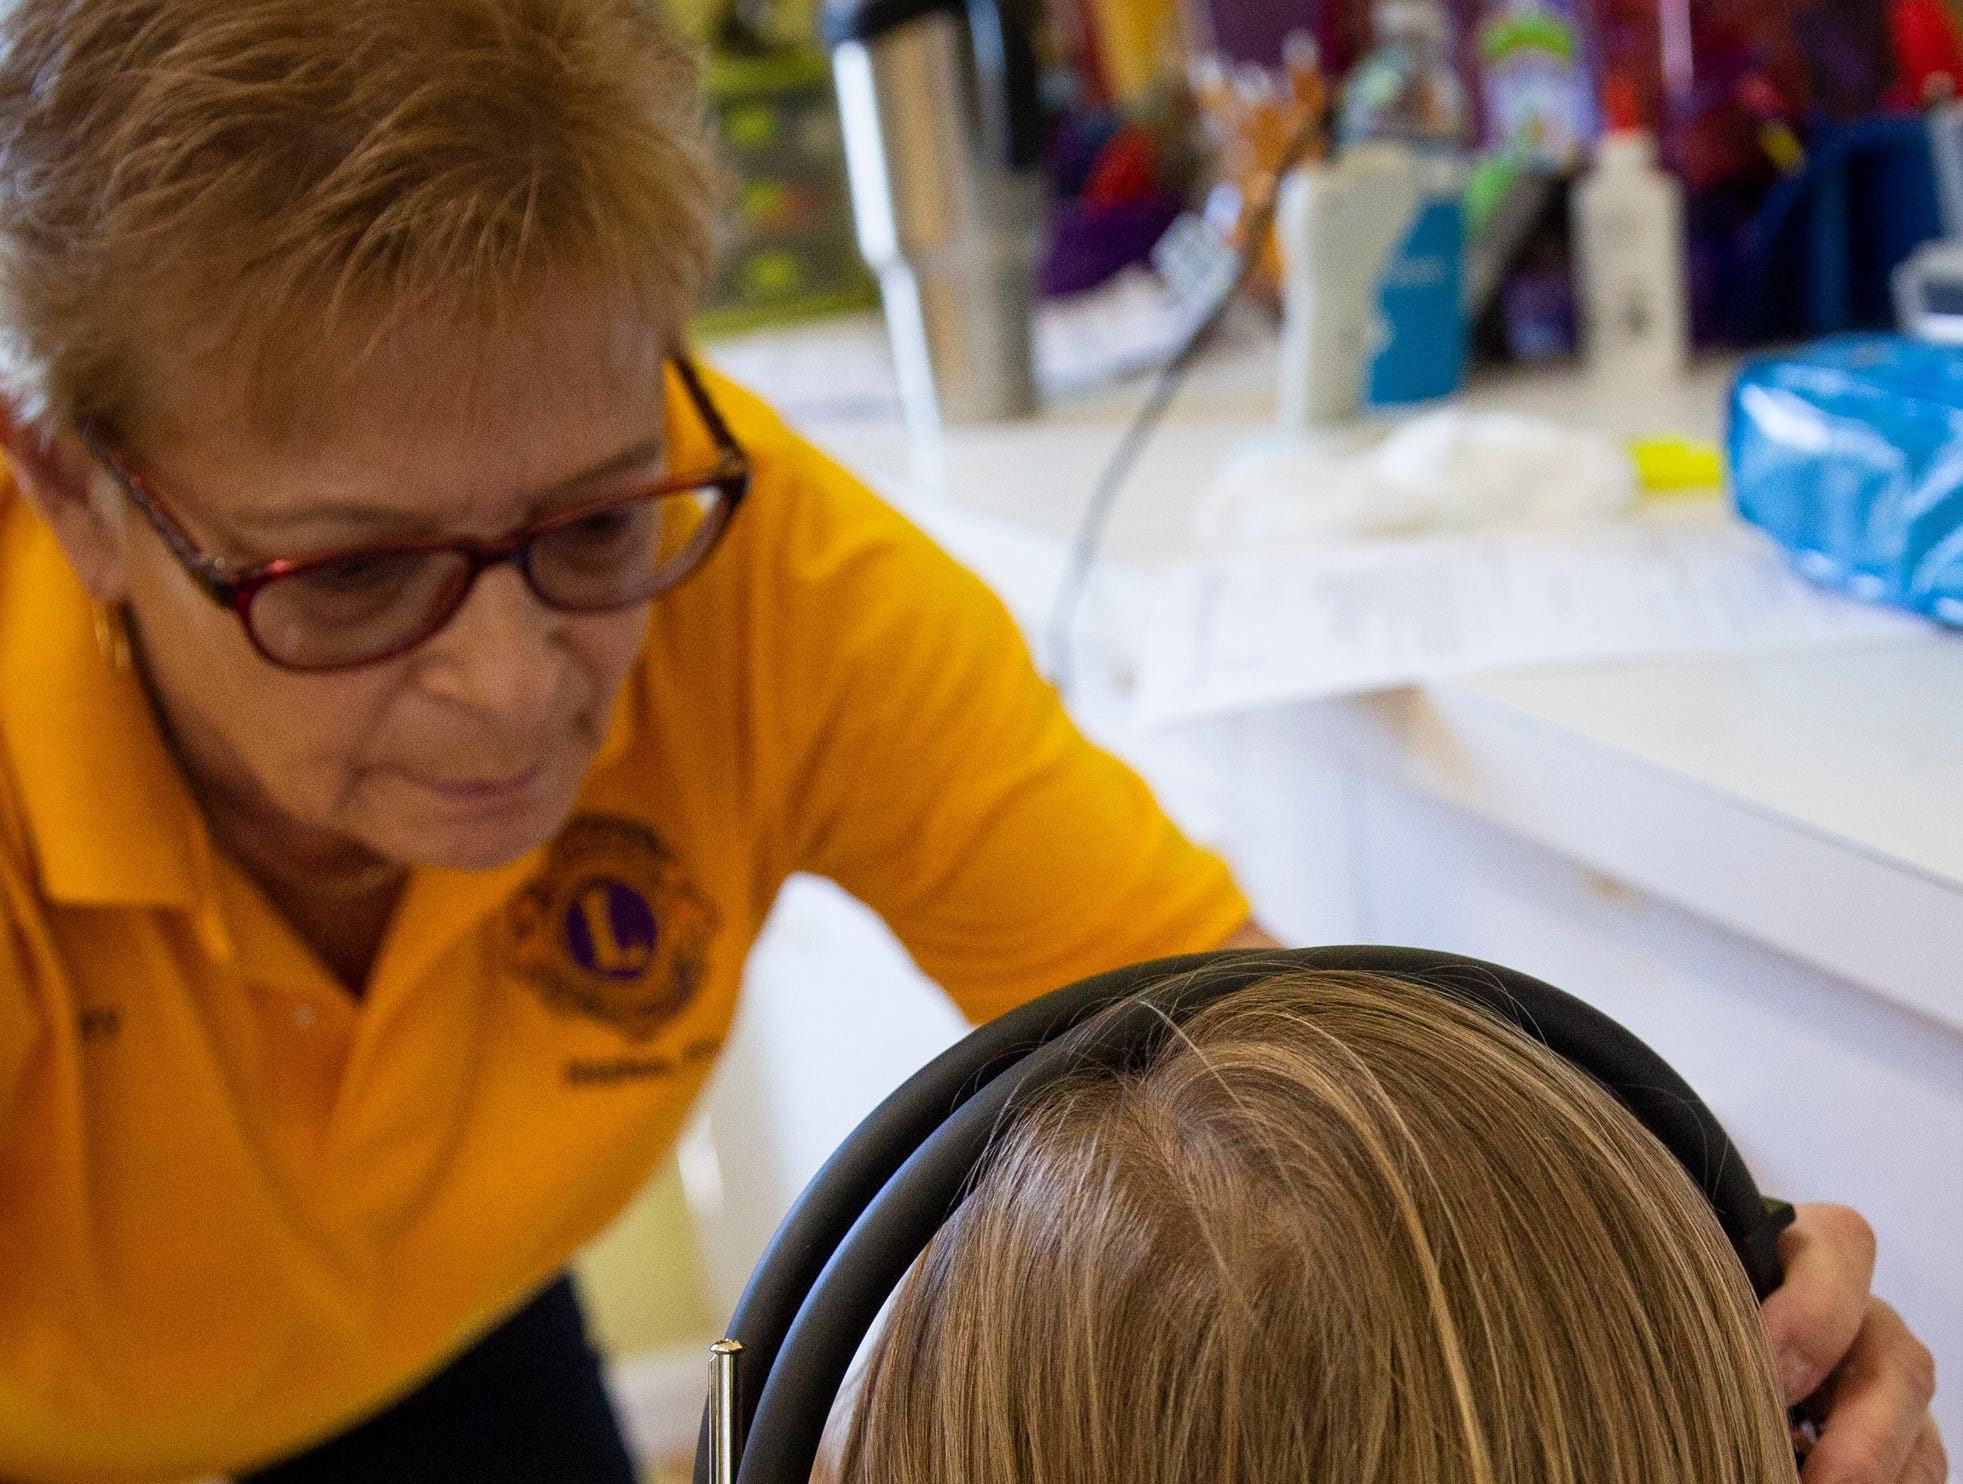 Volunteer Merry Hovey puts headphones on Colin Ryon, 4, so she can test his hearing at Grace Lutheran Preschool in Naples on Friday, April 12, 2019.